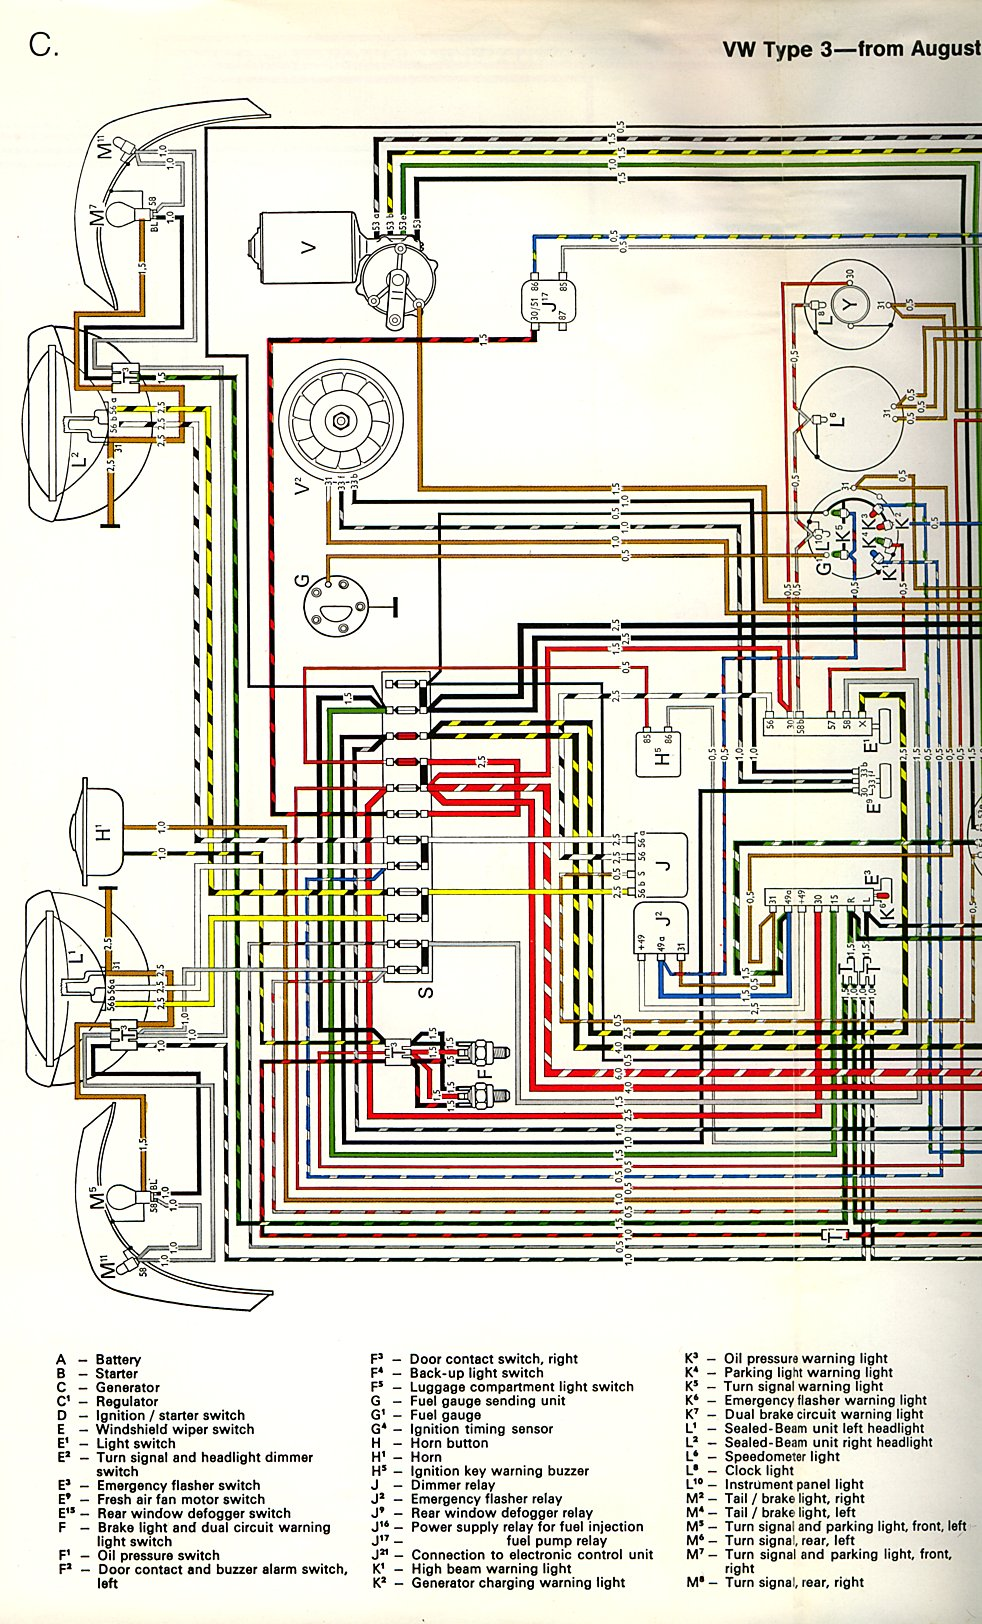 type3_72a thesamba com type 3 wiring diagrams 1973 vw wiring diagram at n-0.co